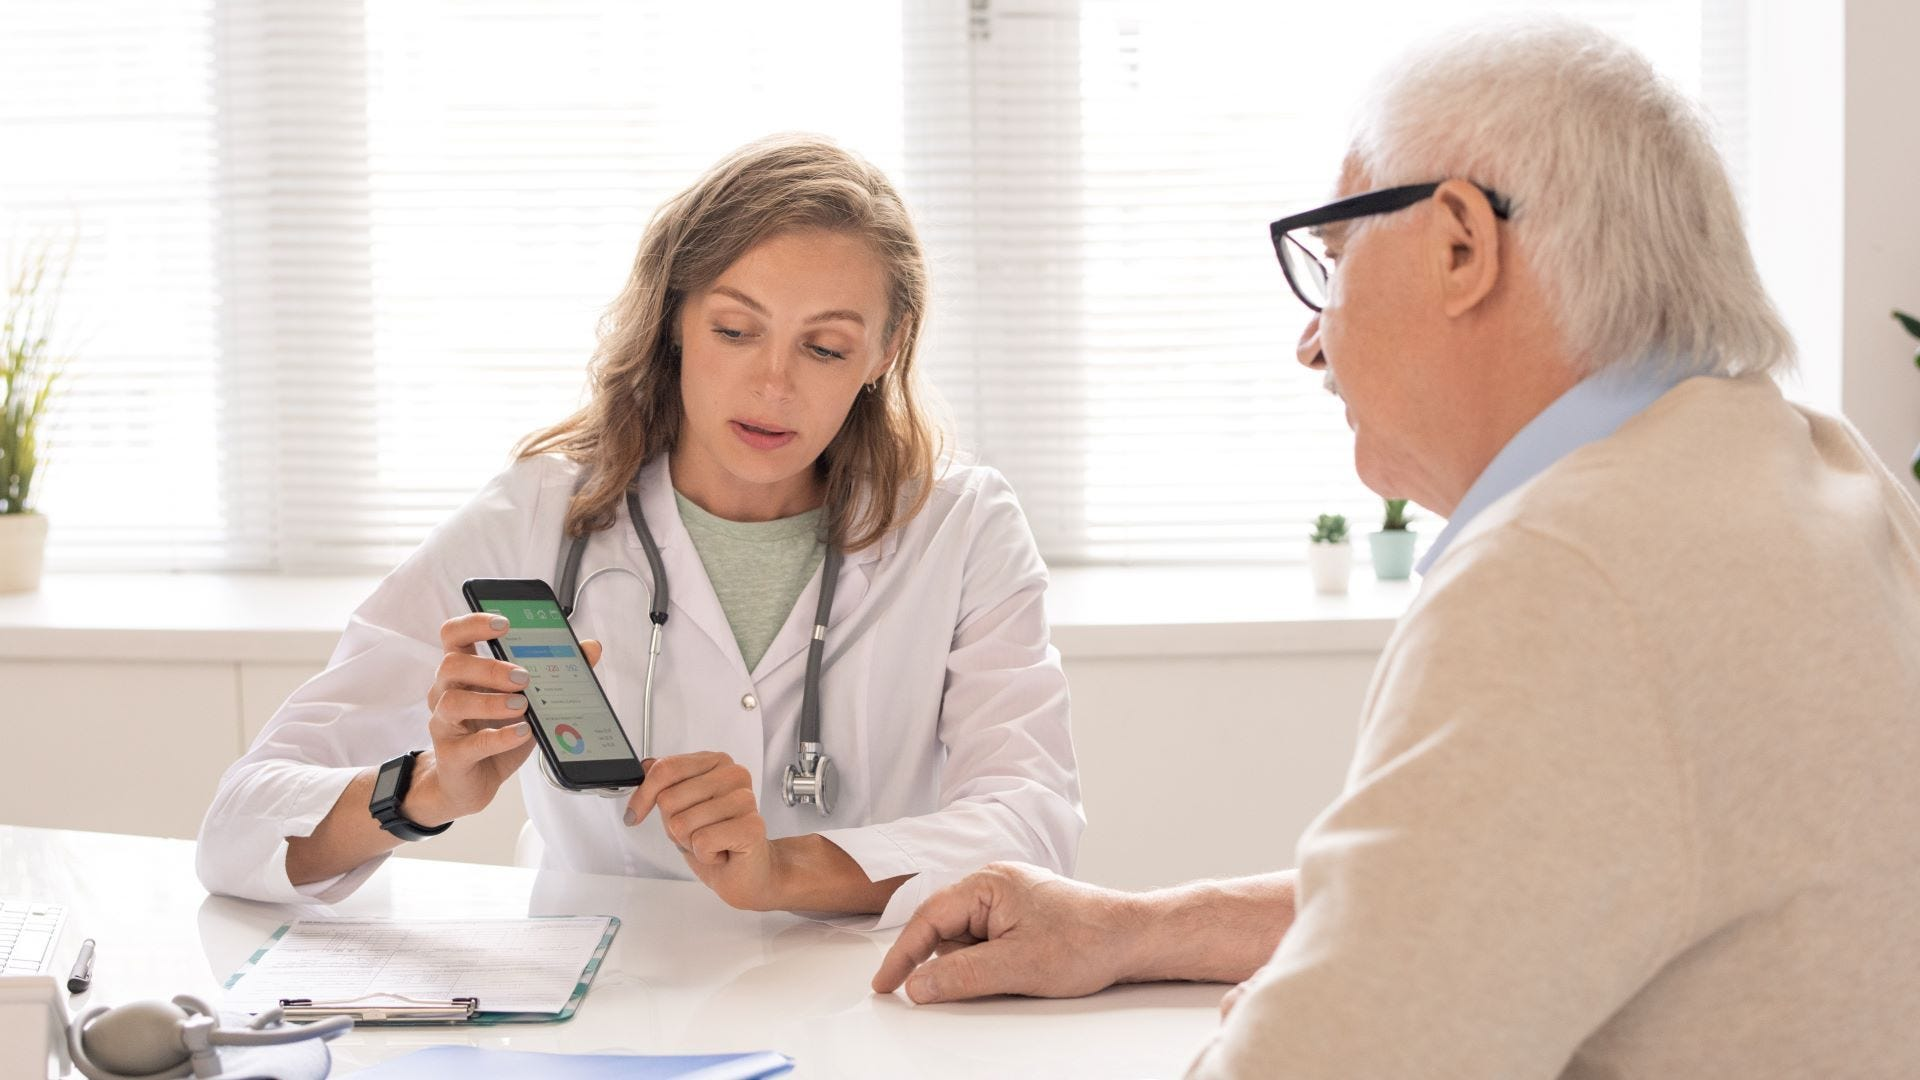 A doctor showing a patient something on his phone.